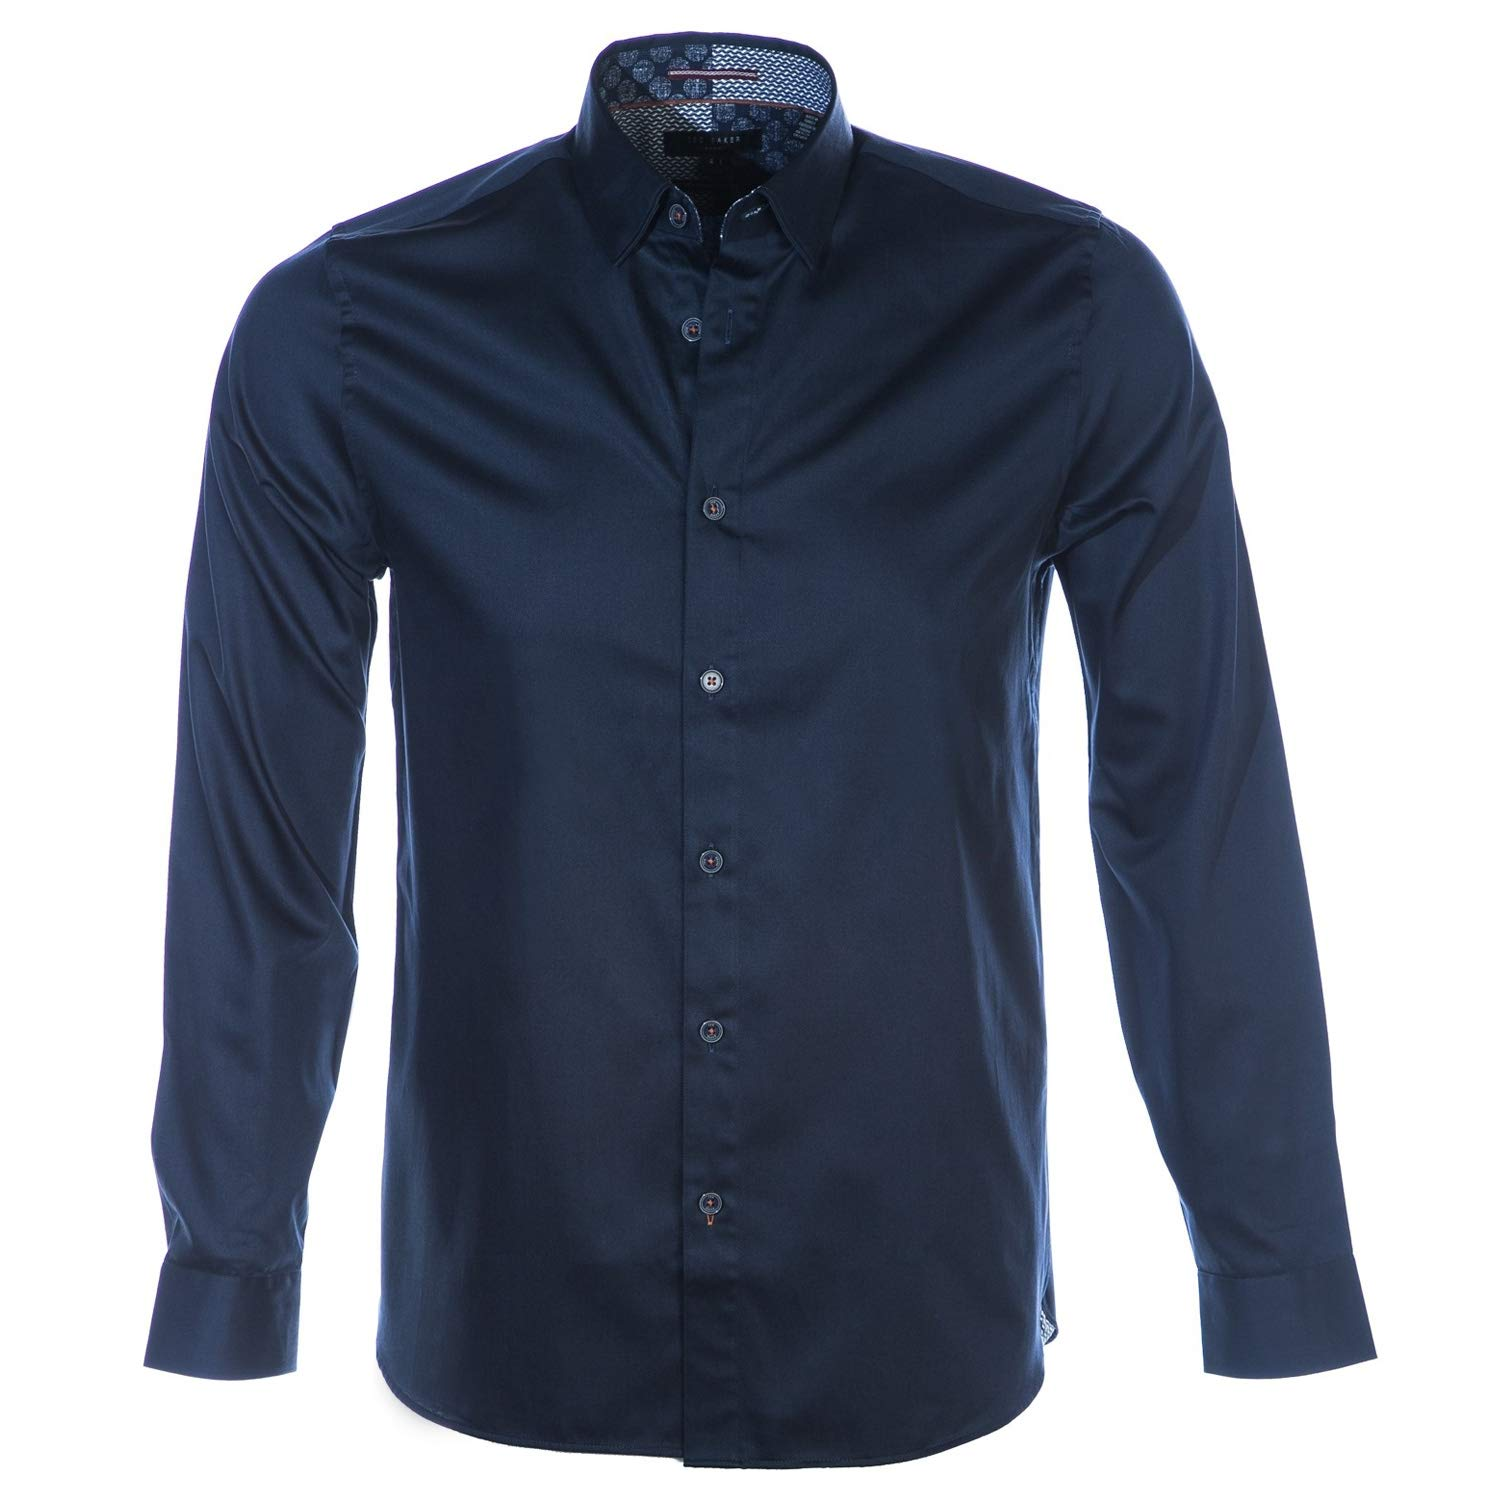 e27cf72ba4348 Ted Baker Plateen Satin Stretch Shirt in Navy Blue Medium  Amazon.co.uk   Clothing